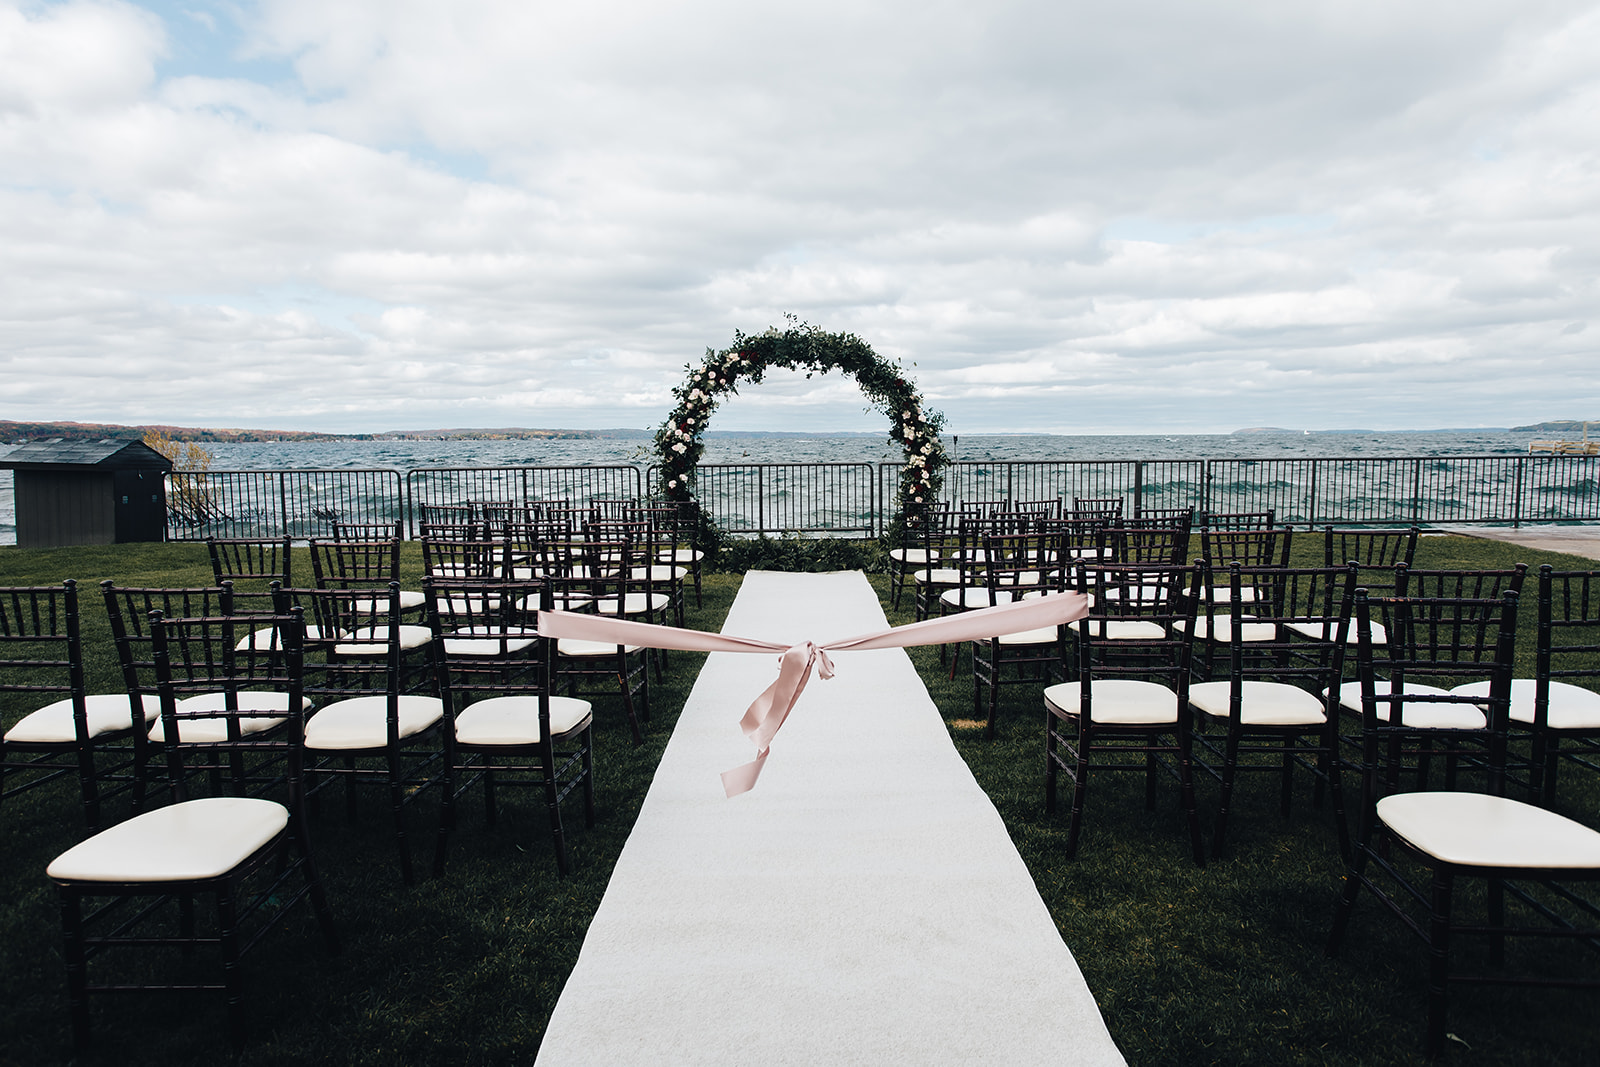 West Bay Beach wedding ceremony space next to lake